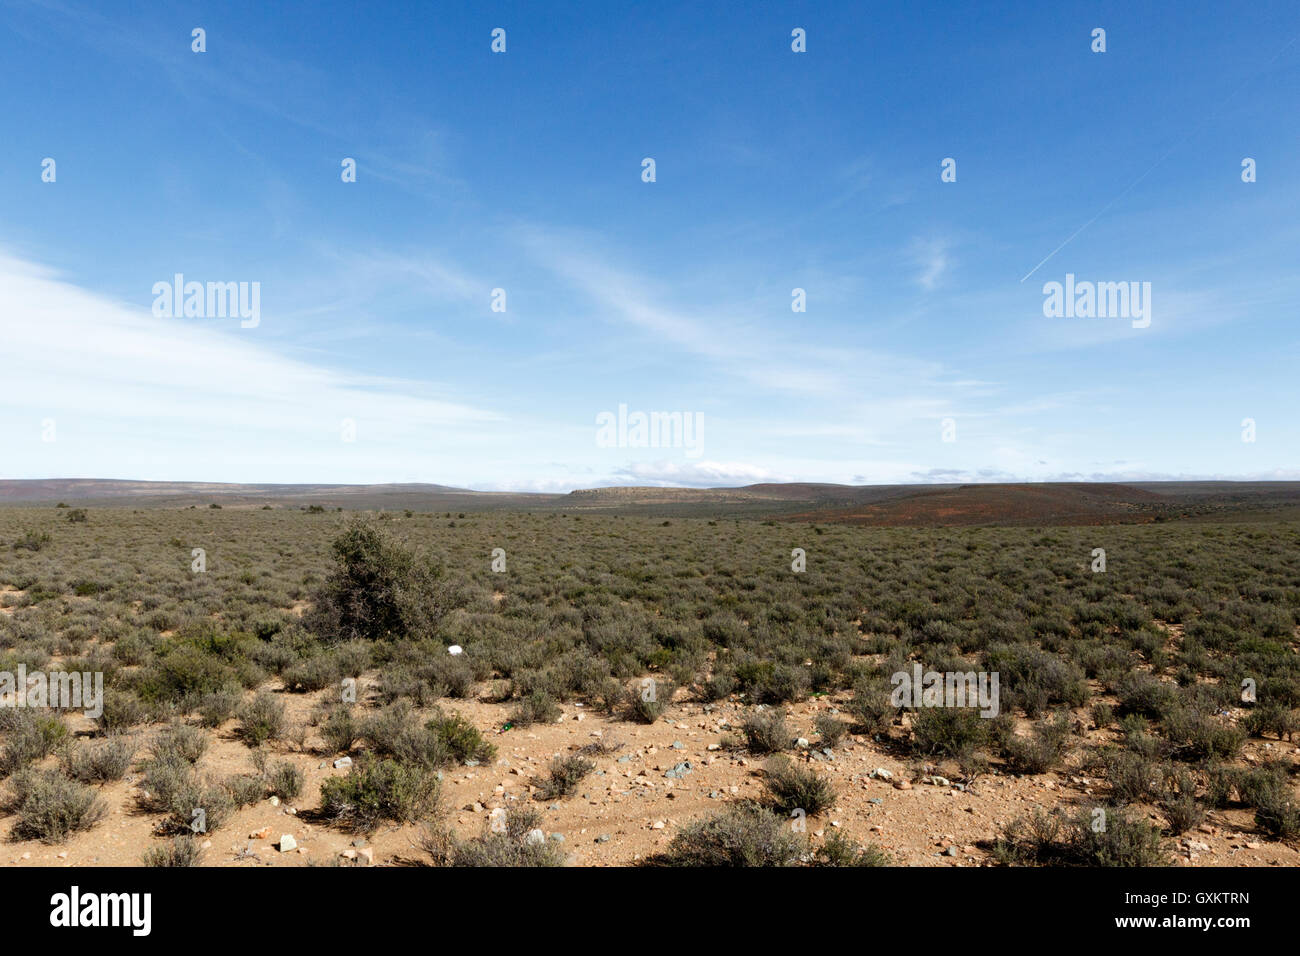 Green and Cold - Sutherland is a town with about 2,841 inhabitants in the Northern Cape province of South Africa. - Stock Image